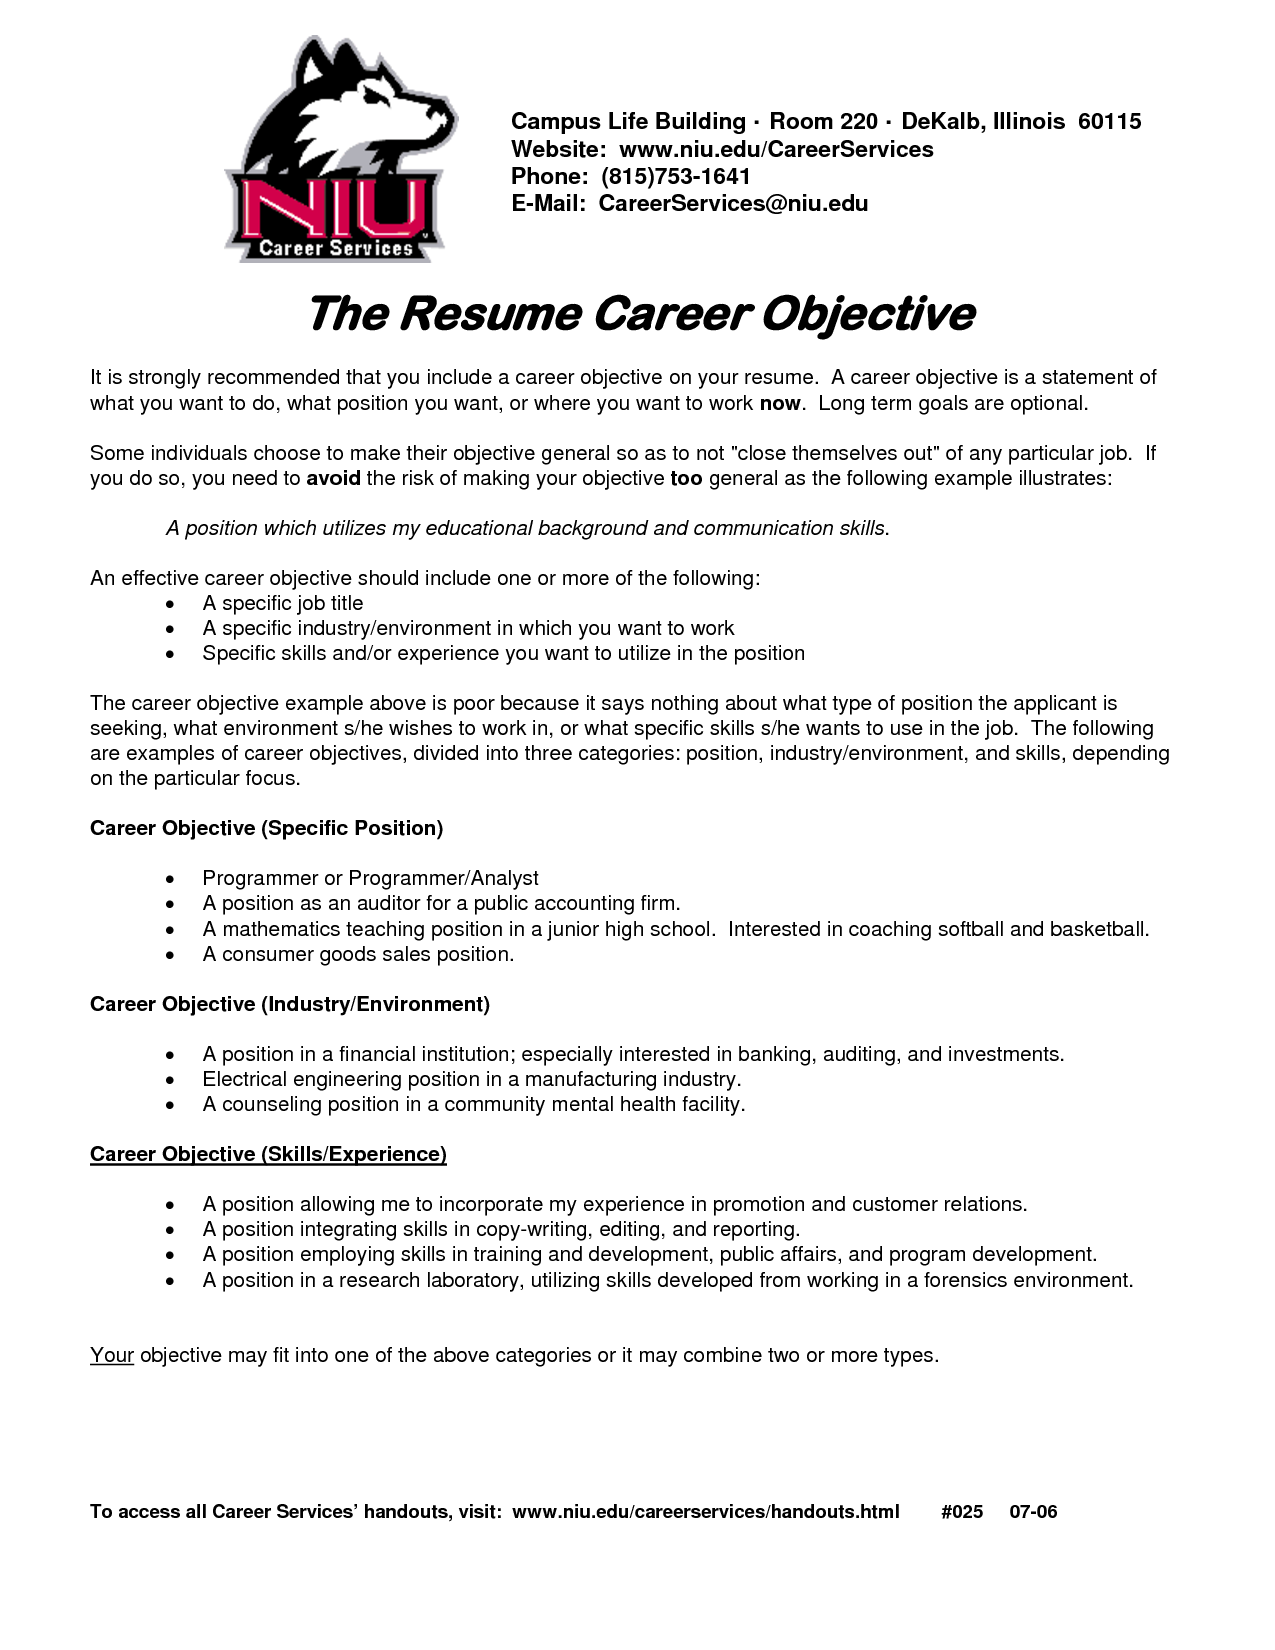 Career Objective On Resume Template Httpswwwgooglesearchqobjective Resume  Resume